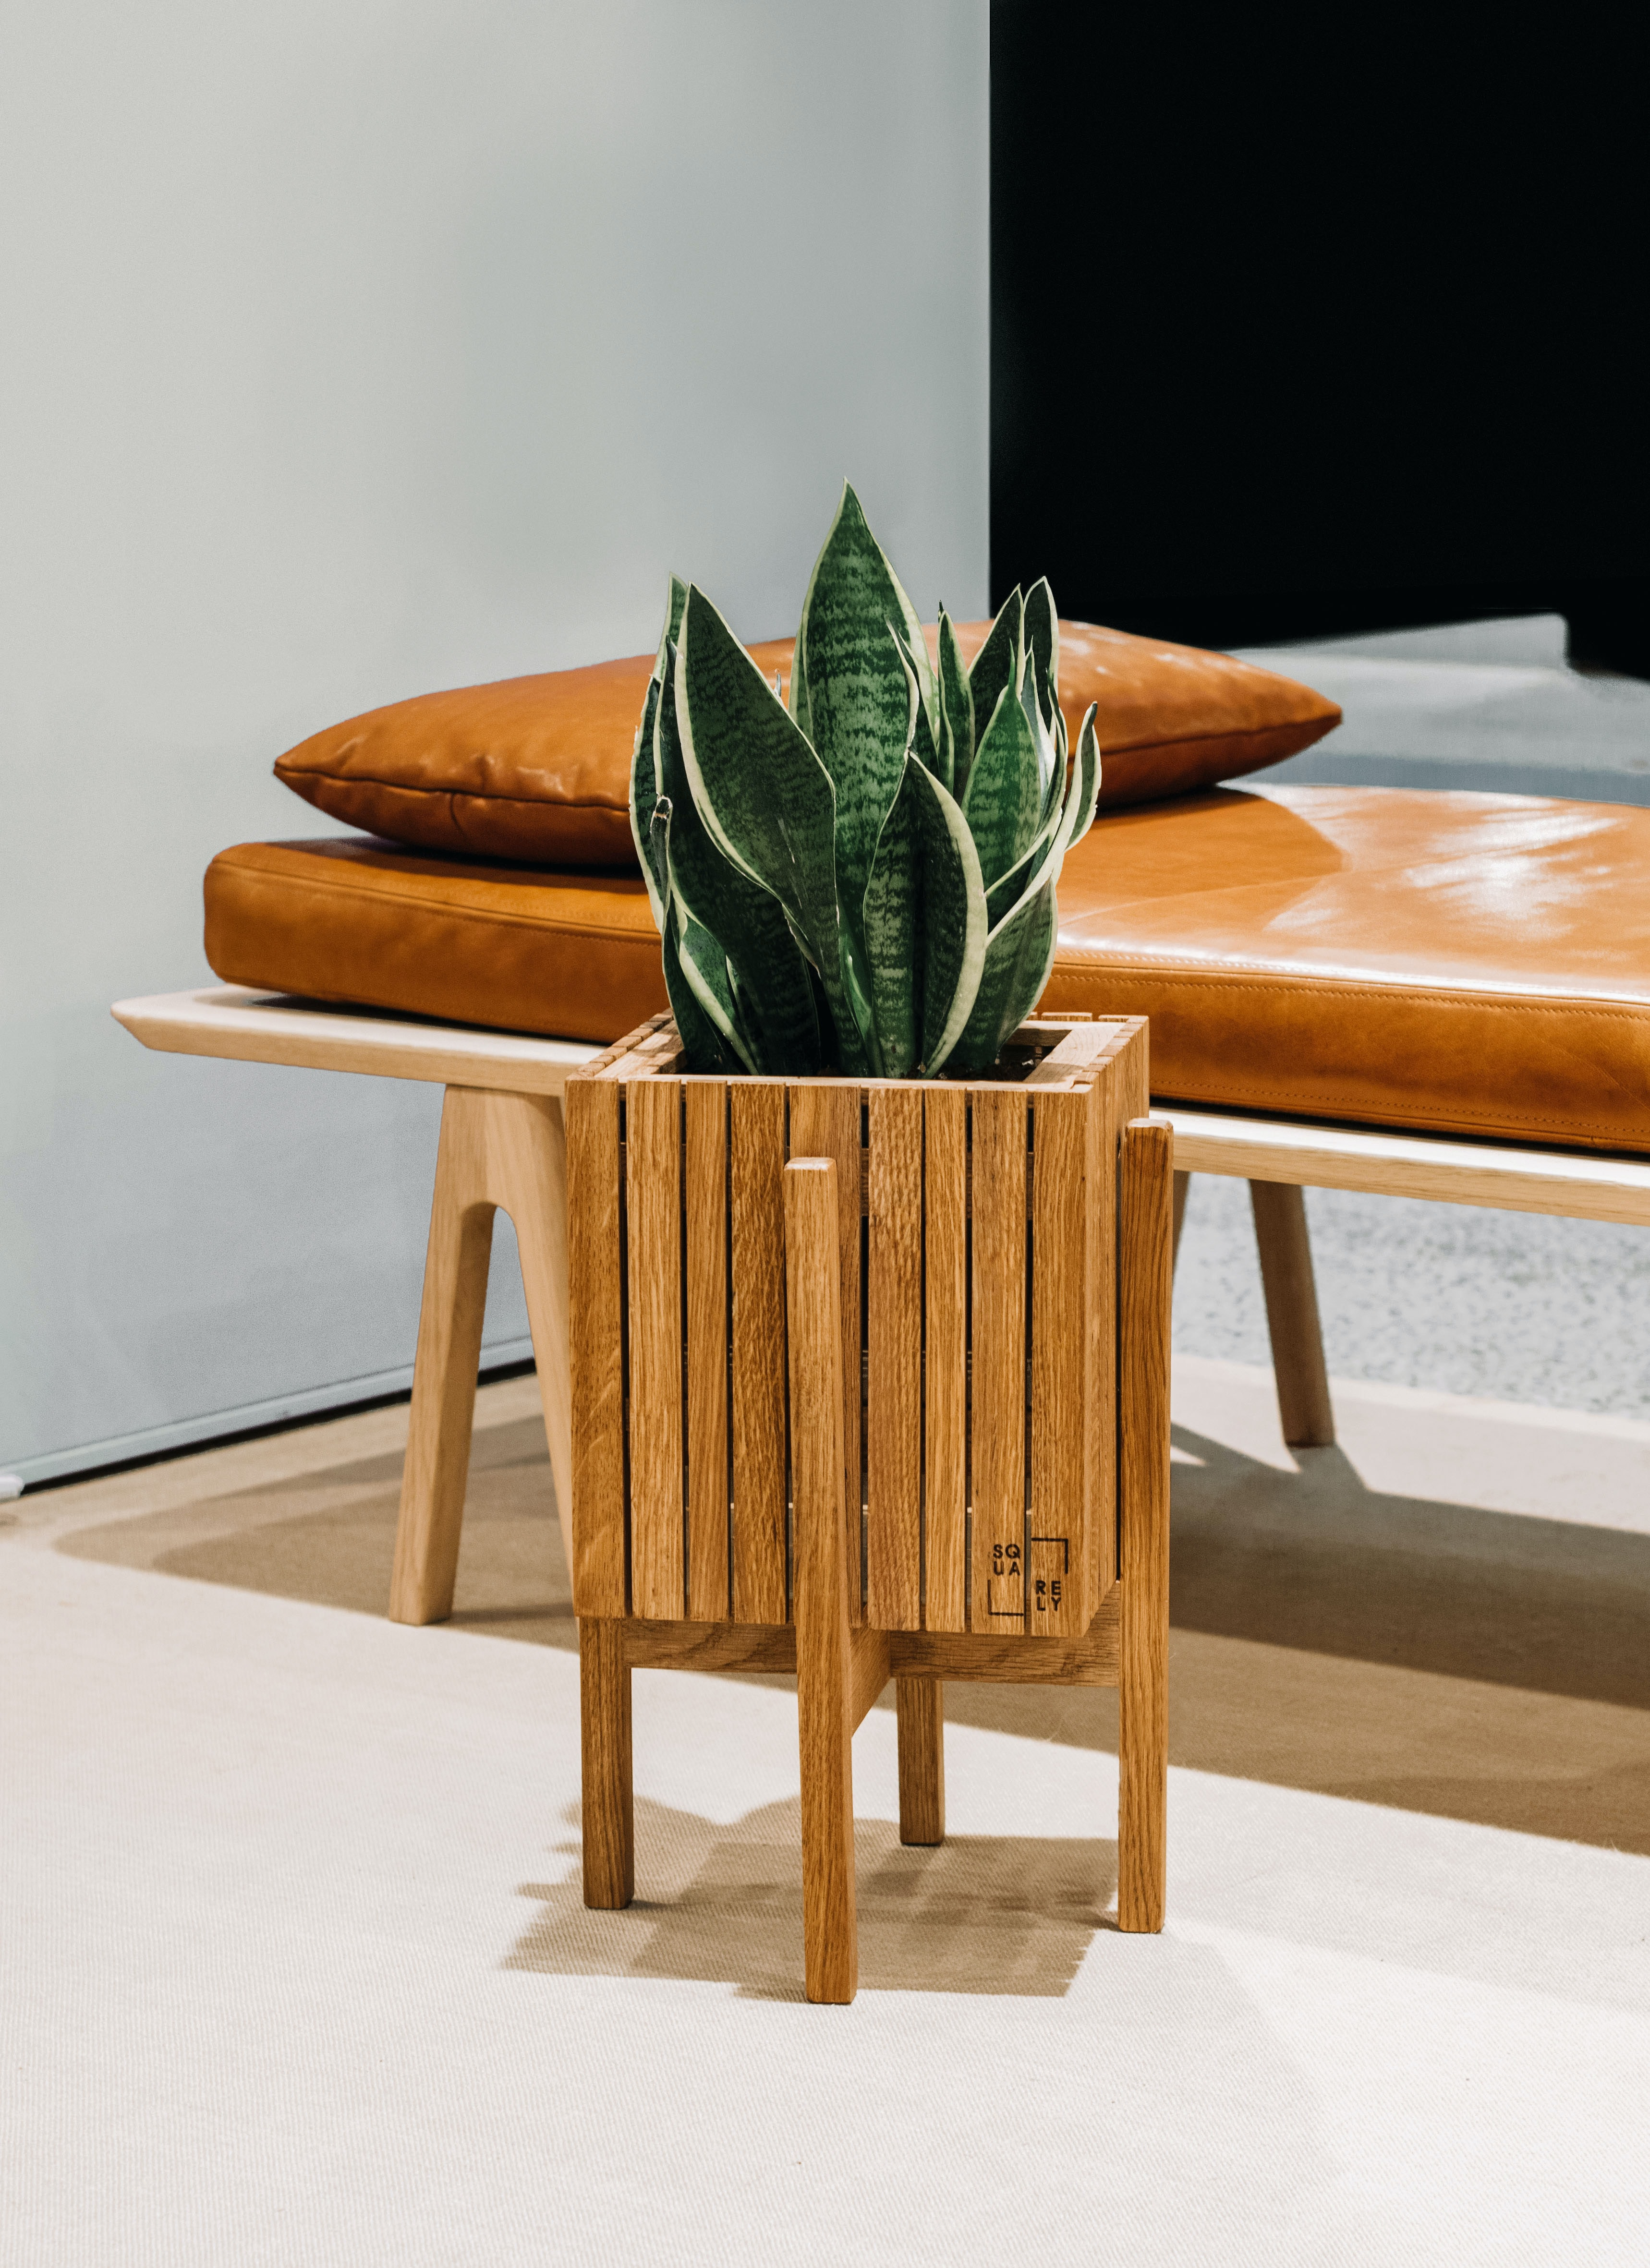 green snake plants on brown wooden pot